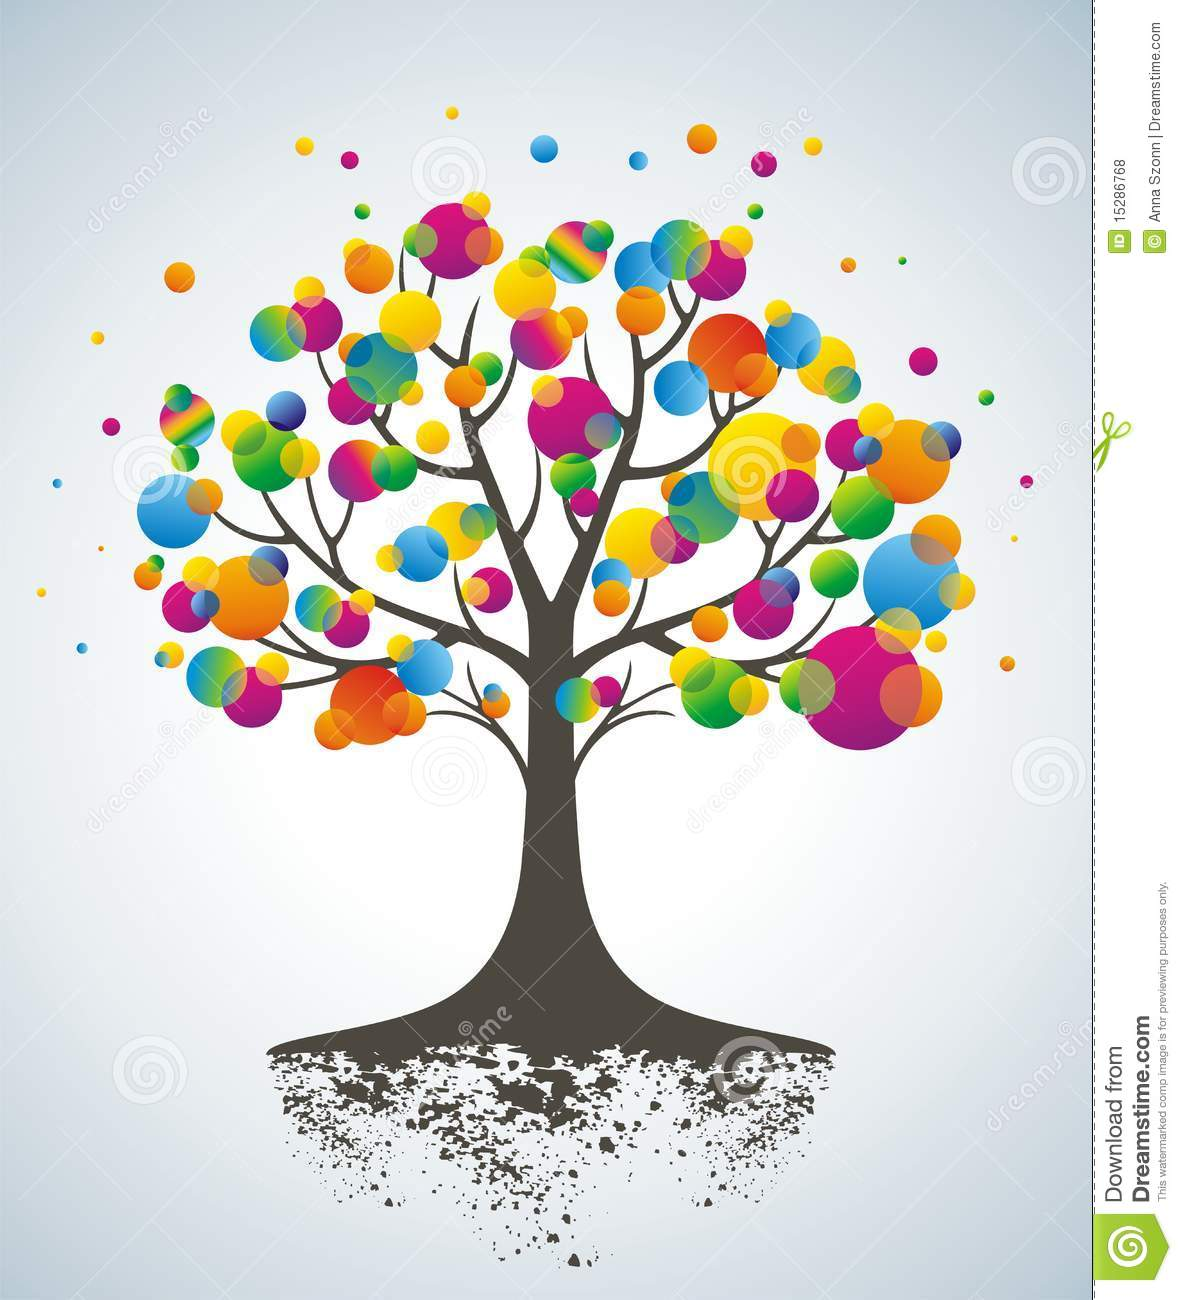 Abstract Colorful Tree Royalty Free Stock Photos Image 15286768